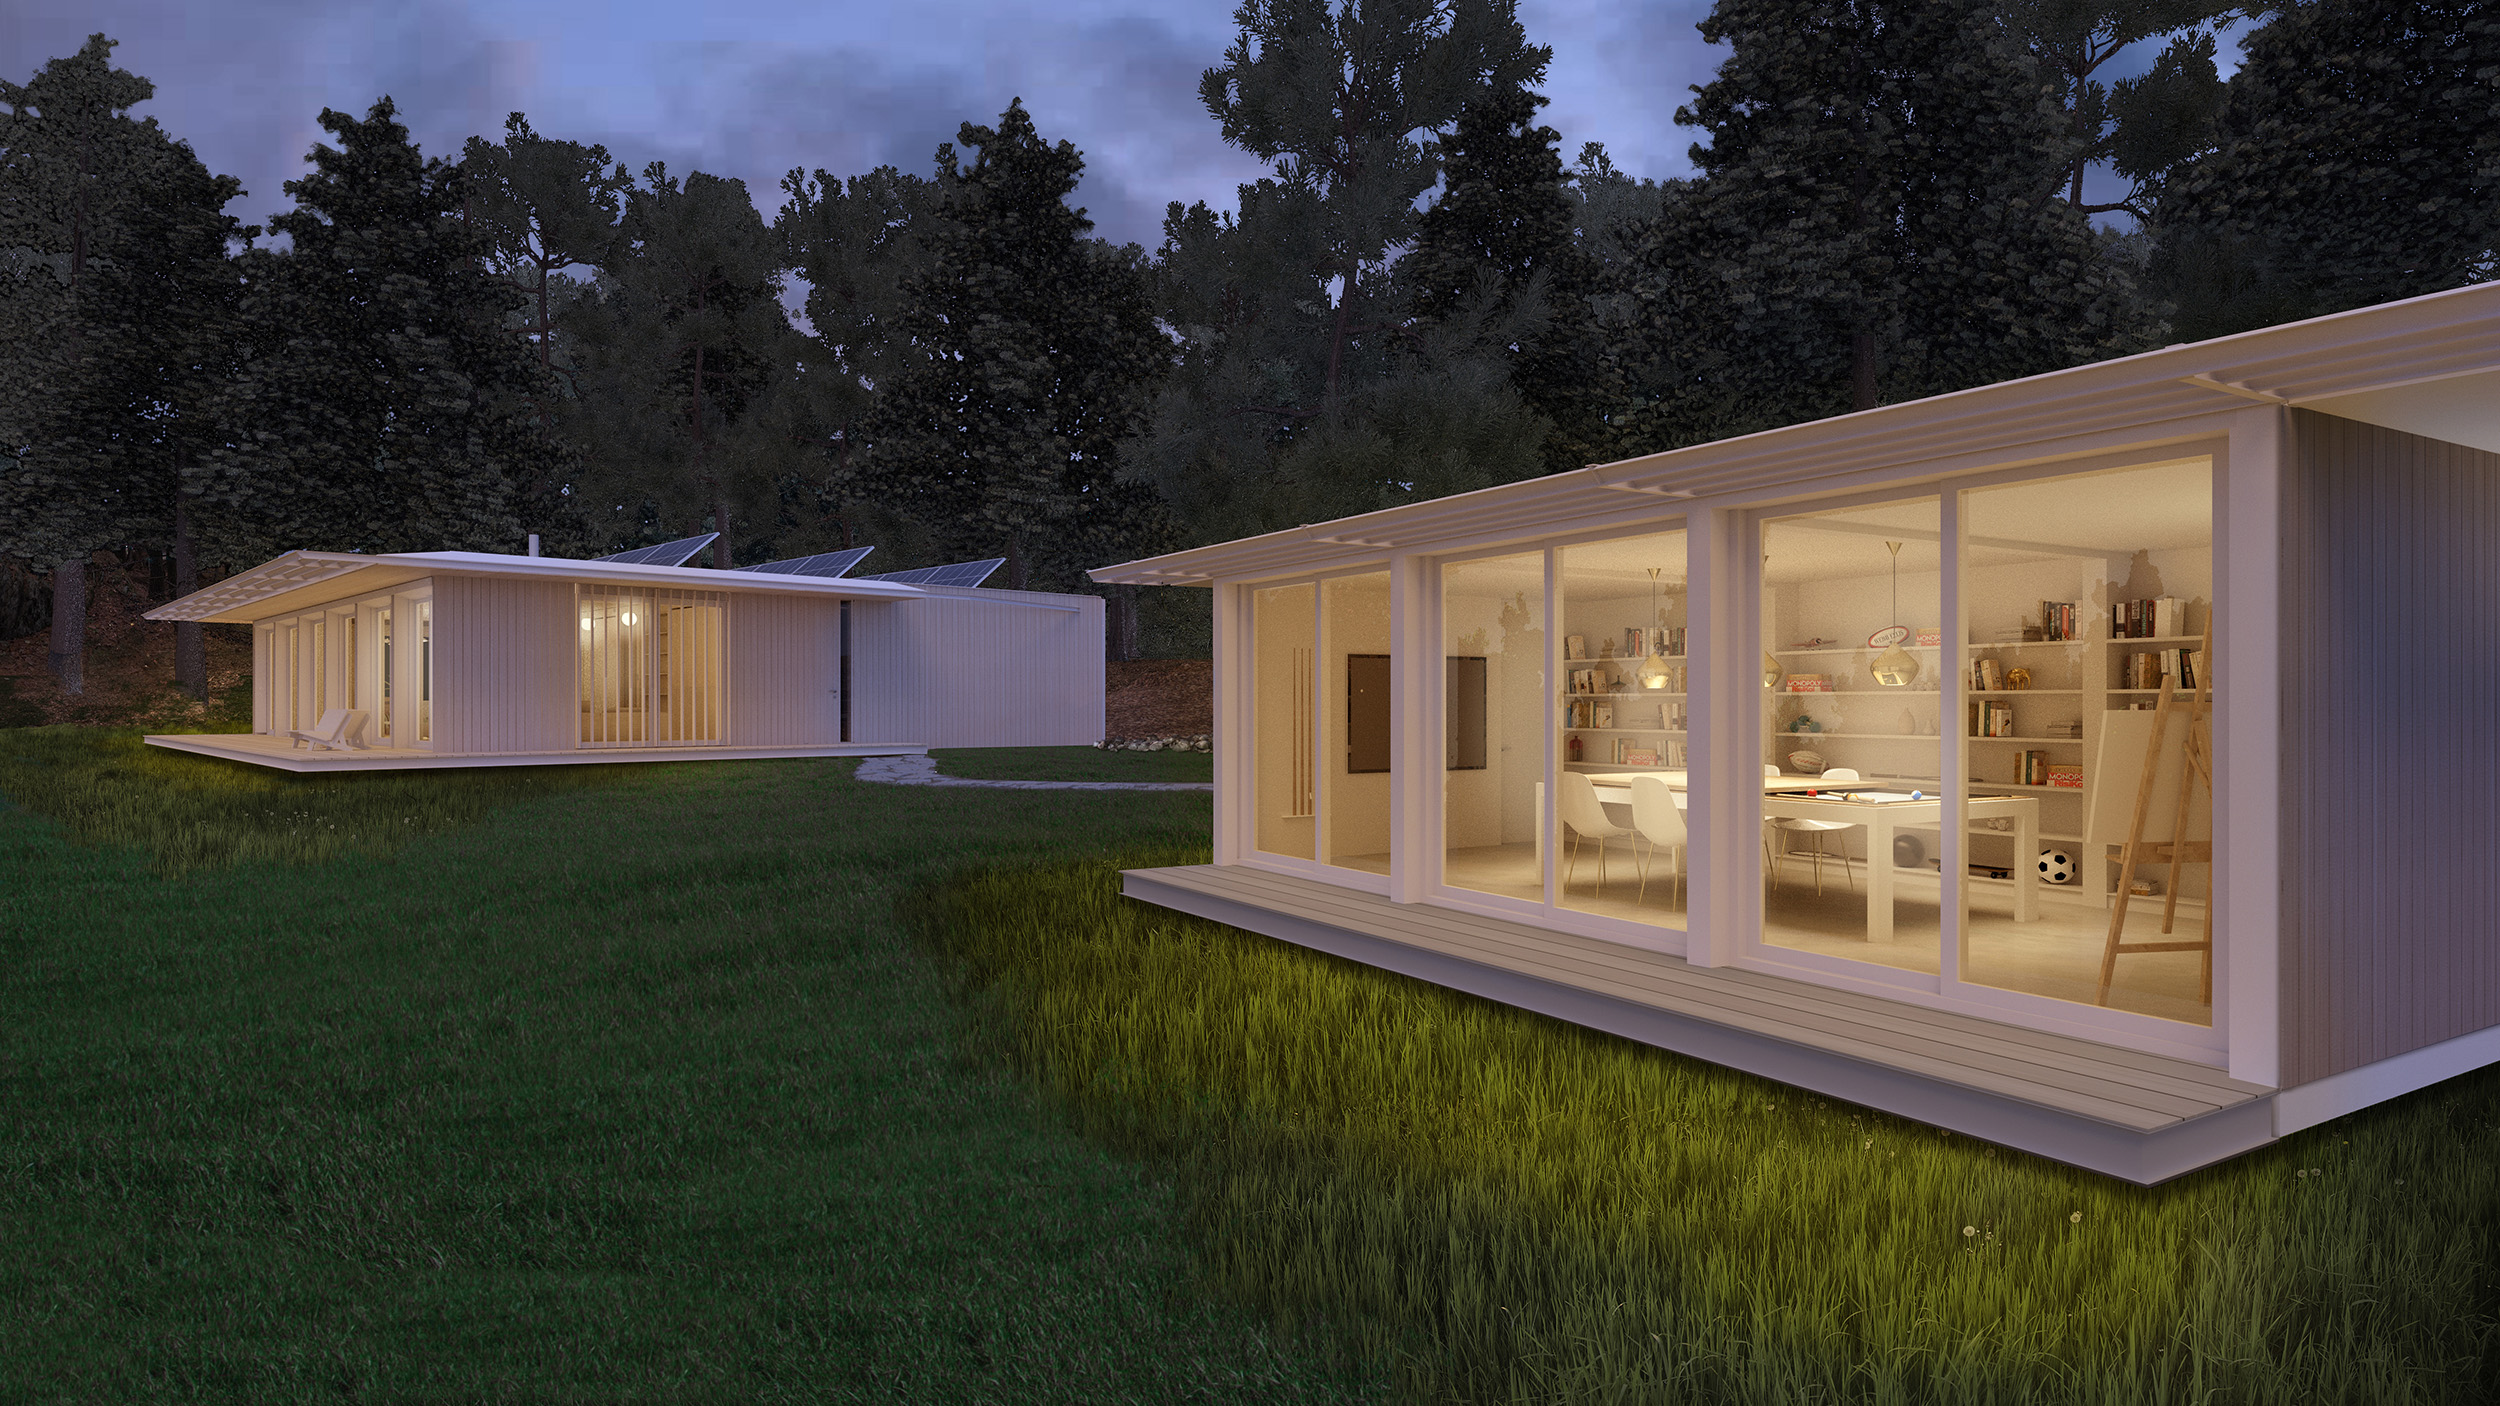 The house and studio design is all-electric, without any fossil fuel use, and rooftop solar as an additional optional upgrade. All lighting is LED. All glazing is triple-glazed.